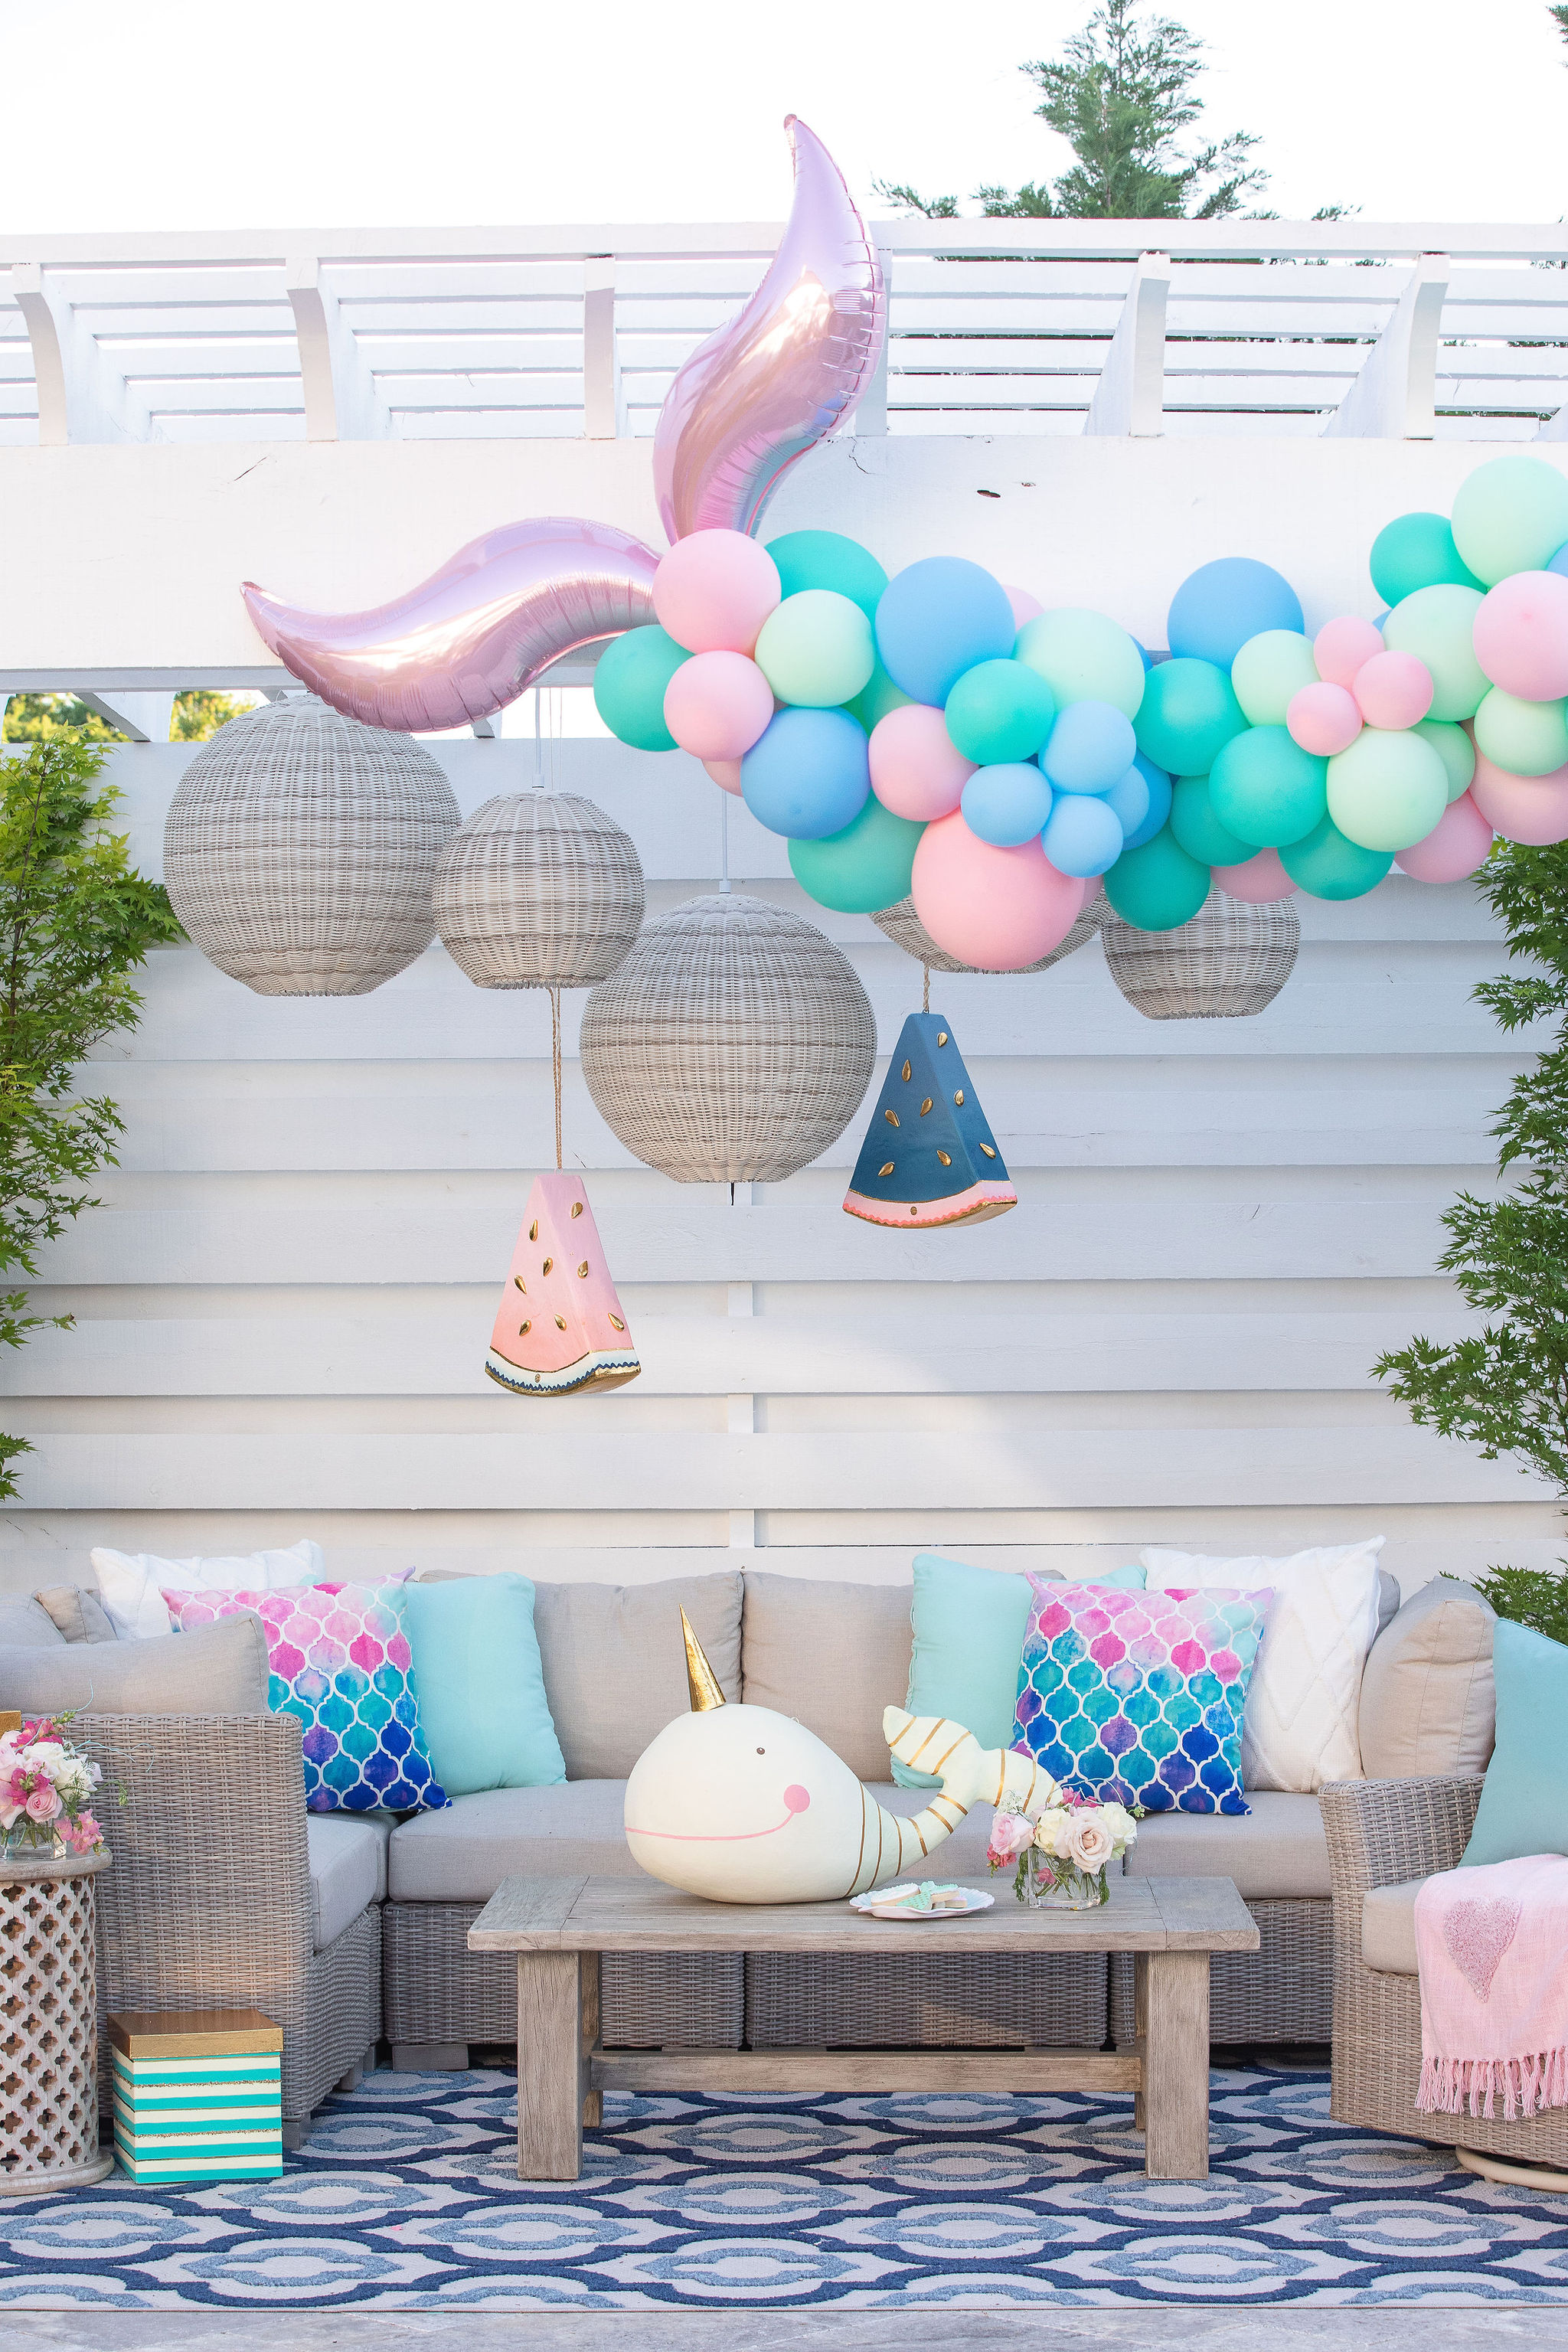 Mermaid Party - fun, bright, and colorful design styling for HGTV